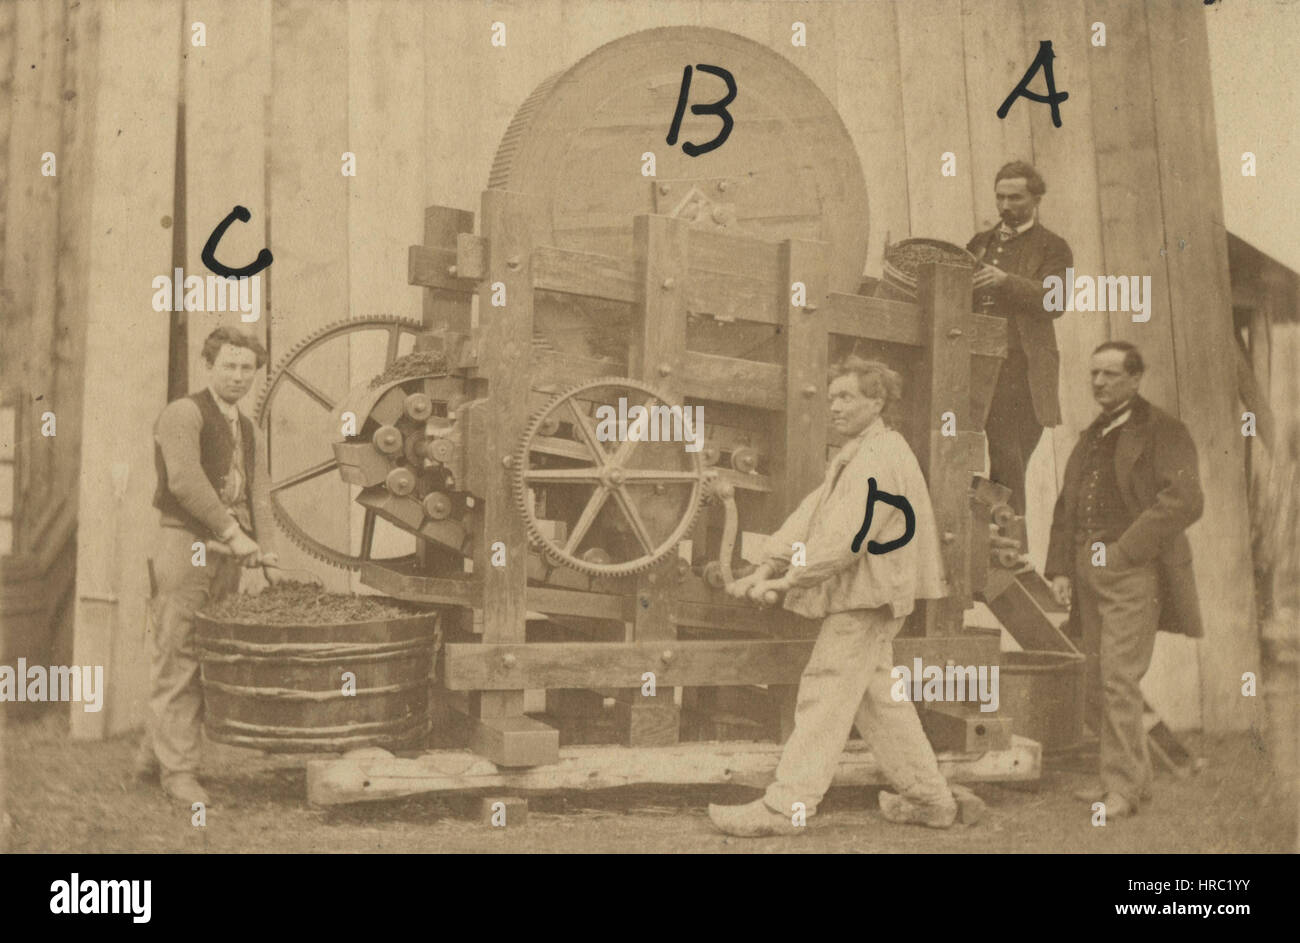 1860s antique industrial occupational photo of a primitive grape pressing machine and explanation of the process. - Stock Image